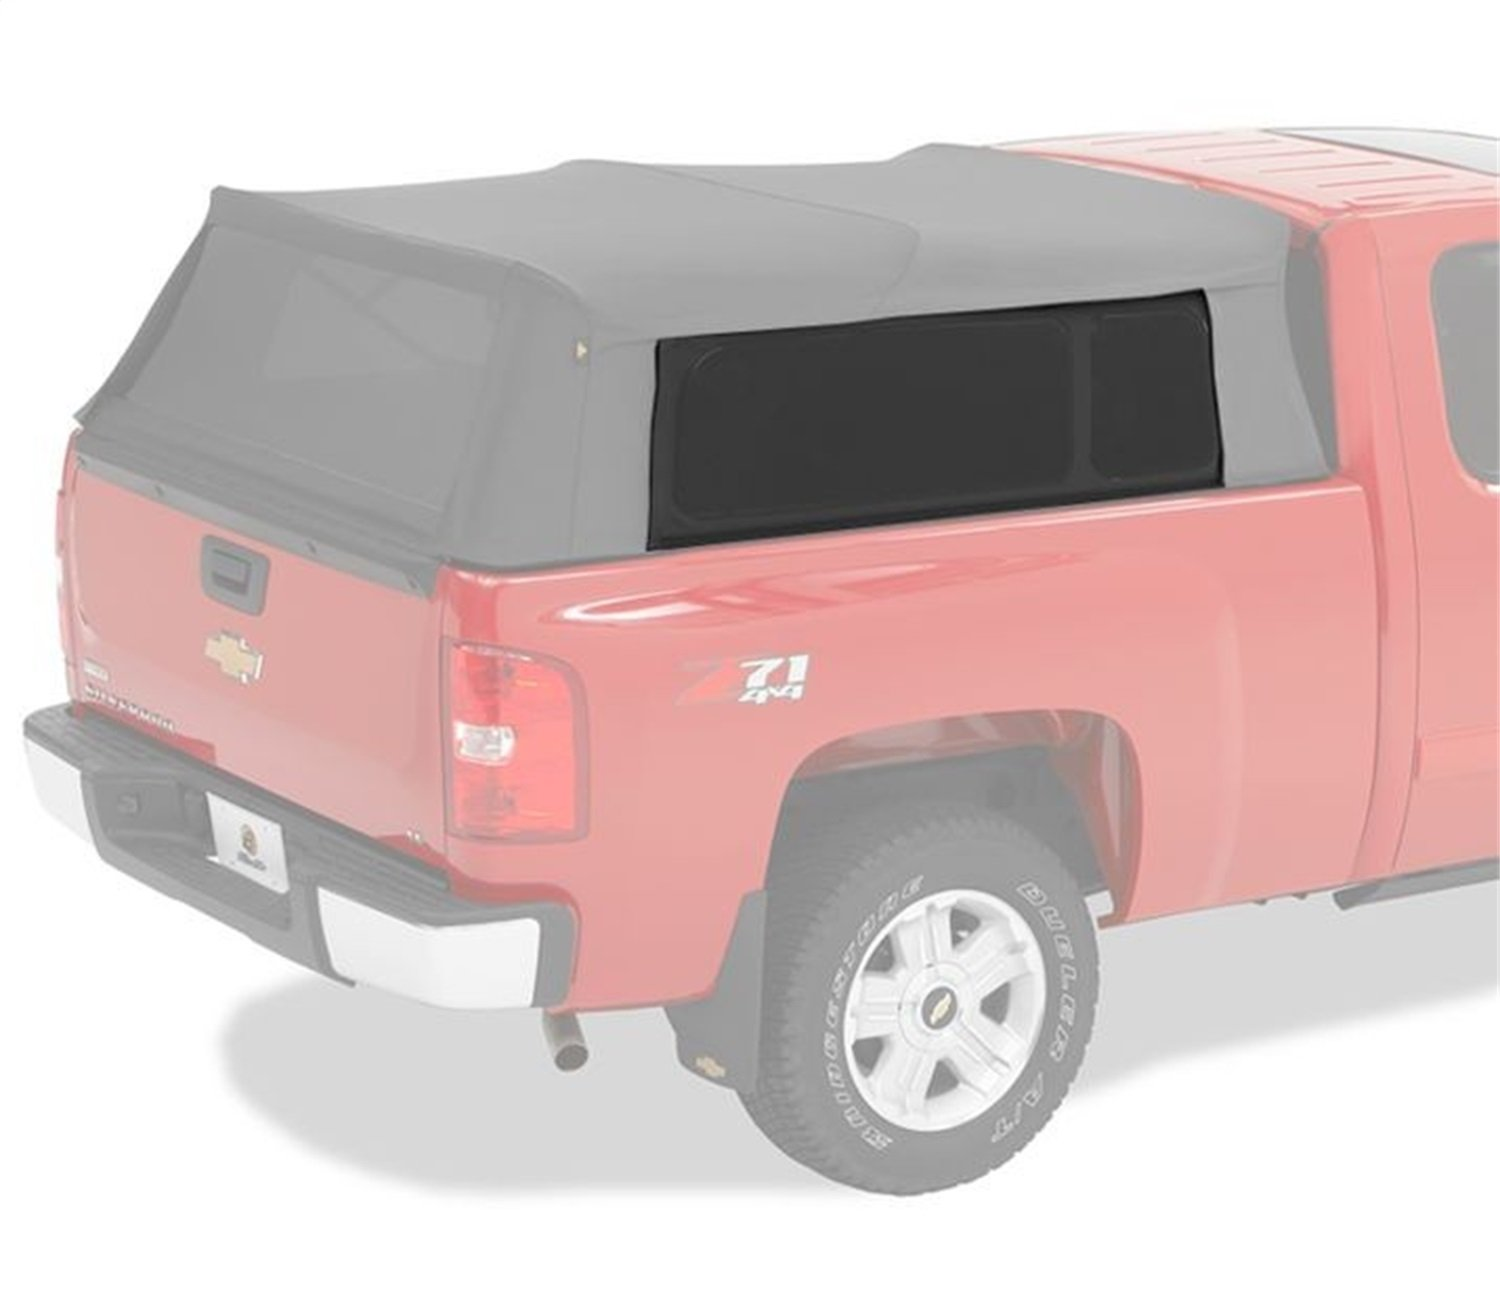 Bestop 76324-35 Black Diamond Tinted Window Replacement Kit for Supertop for Truck Bed Cover (use w/ 76308, 76309, 76310)